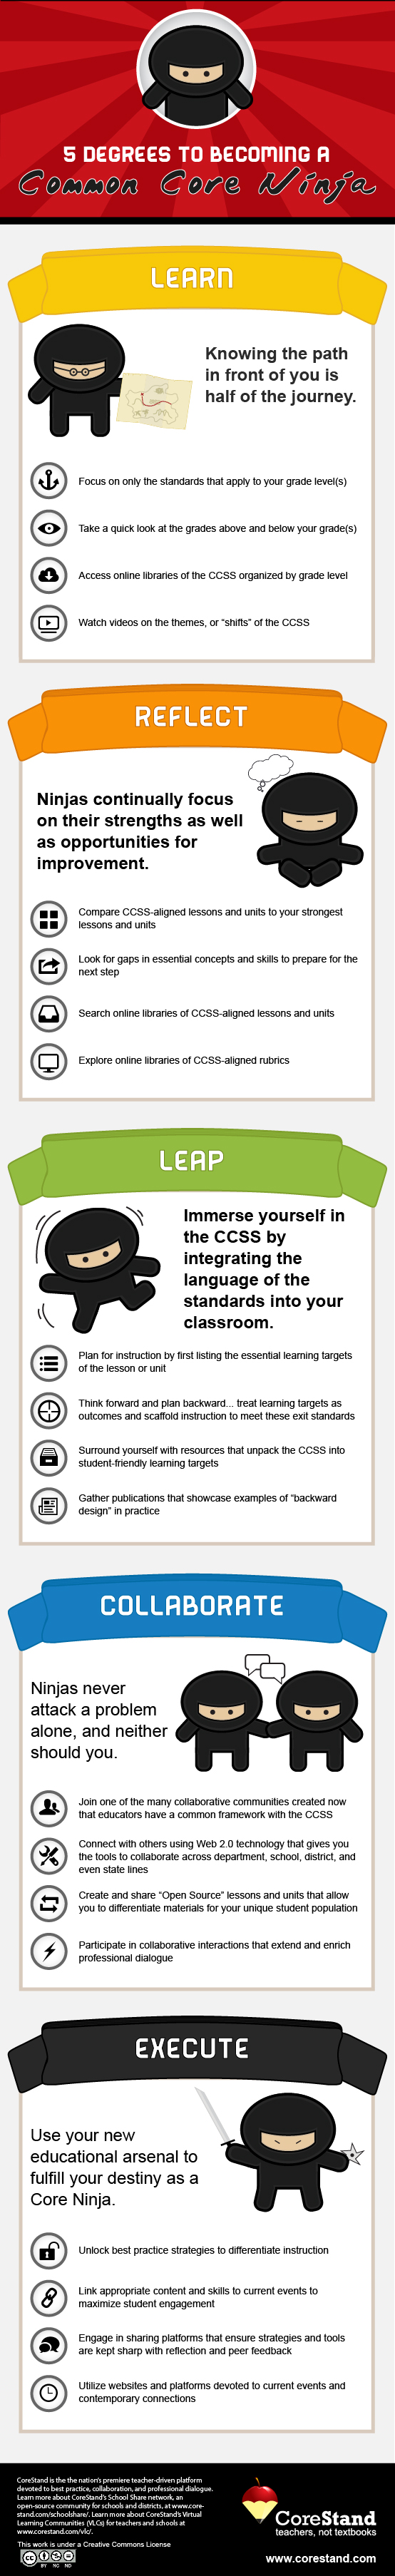 5-degrees-to-becoming-a-common-core-ninja-infographic_515dbc6db7f77